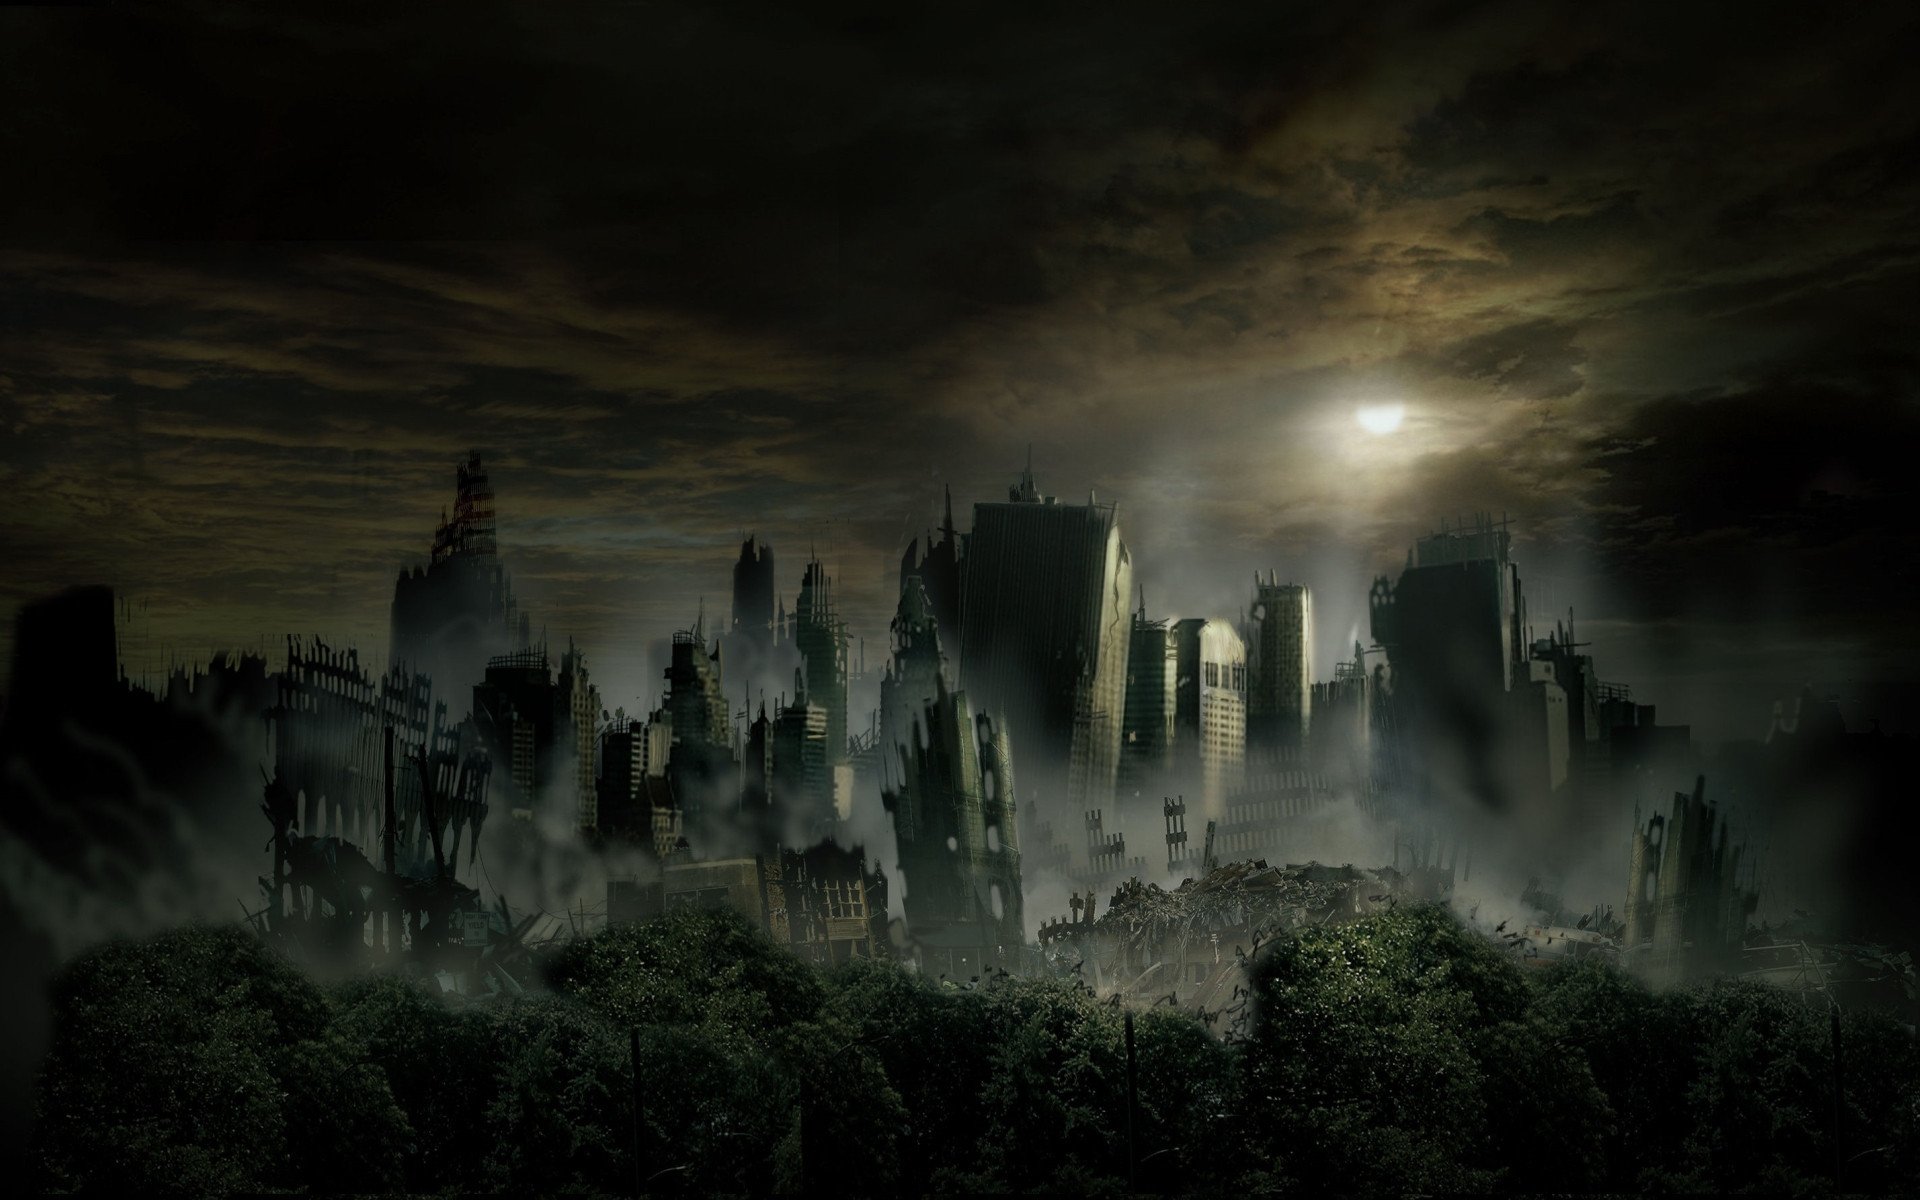 (post) Apocalyptic wallpapers HD. by CaptainCapitalAndHisPunctuationPalsJul  1 2014. Load 14 more images Grid view